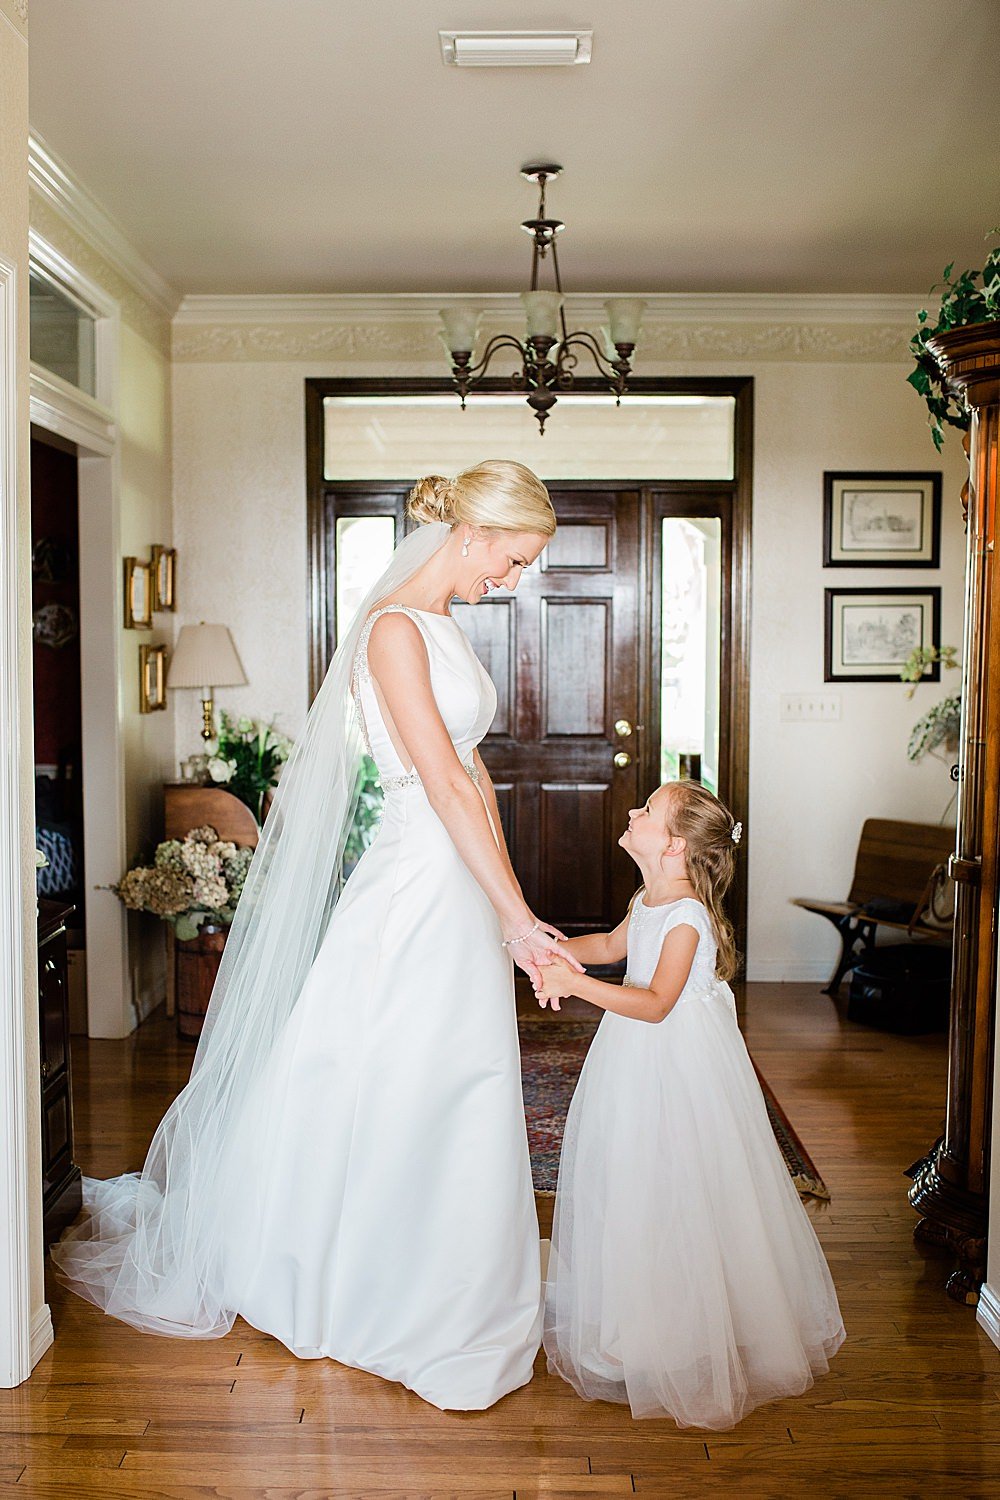 Gainesville wedding, Gainesville wedding photographer, Florida Wedding, Florida Wedding Photographer, North Florida Wedding Photographer, Florida wedding ideas, Florida wedding inspiration, Florida wedding planning, backyard wedding, backyard wedding inspiration, upscale backyard wedding, tent wedding ideas,